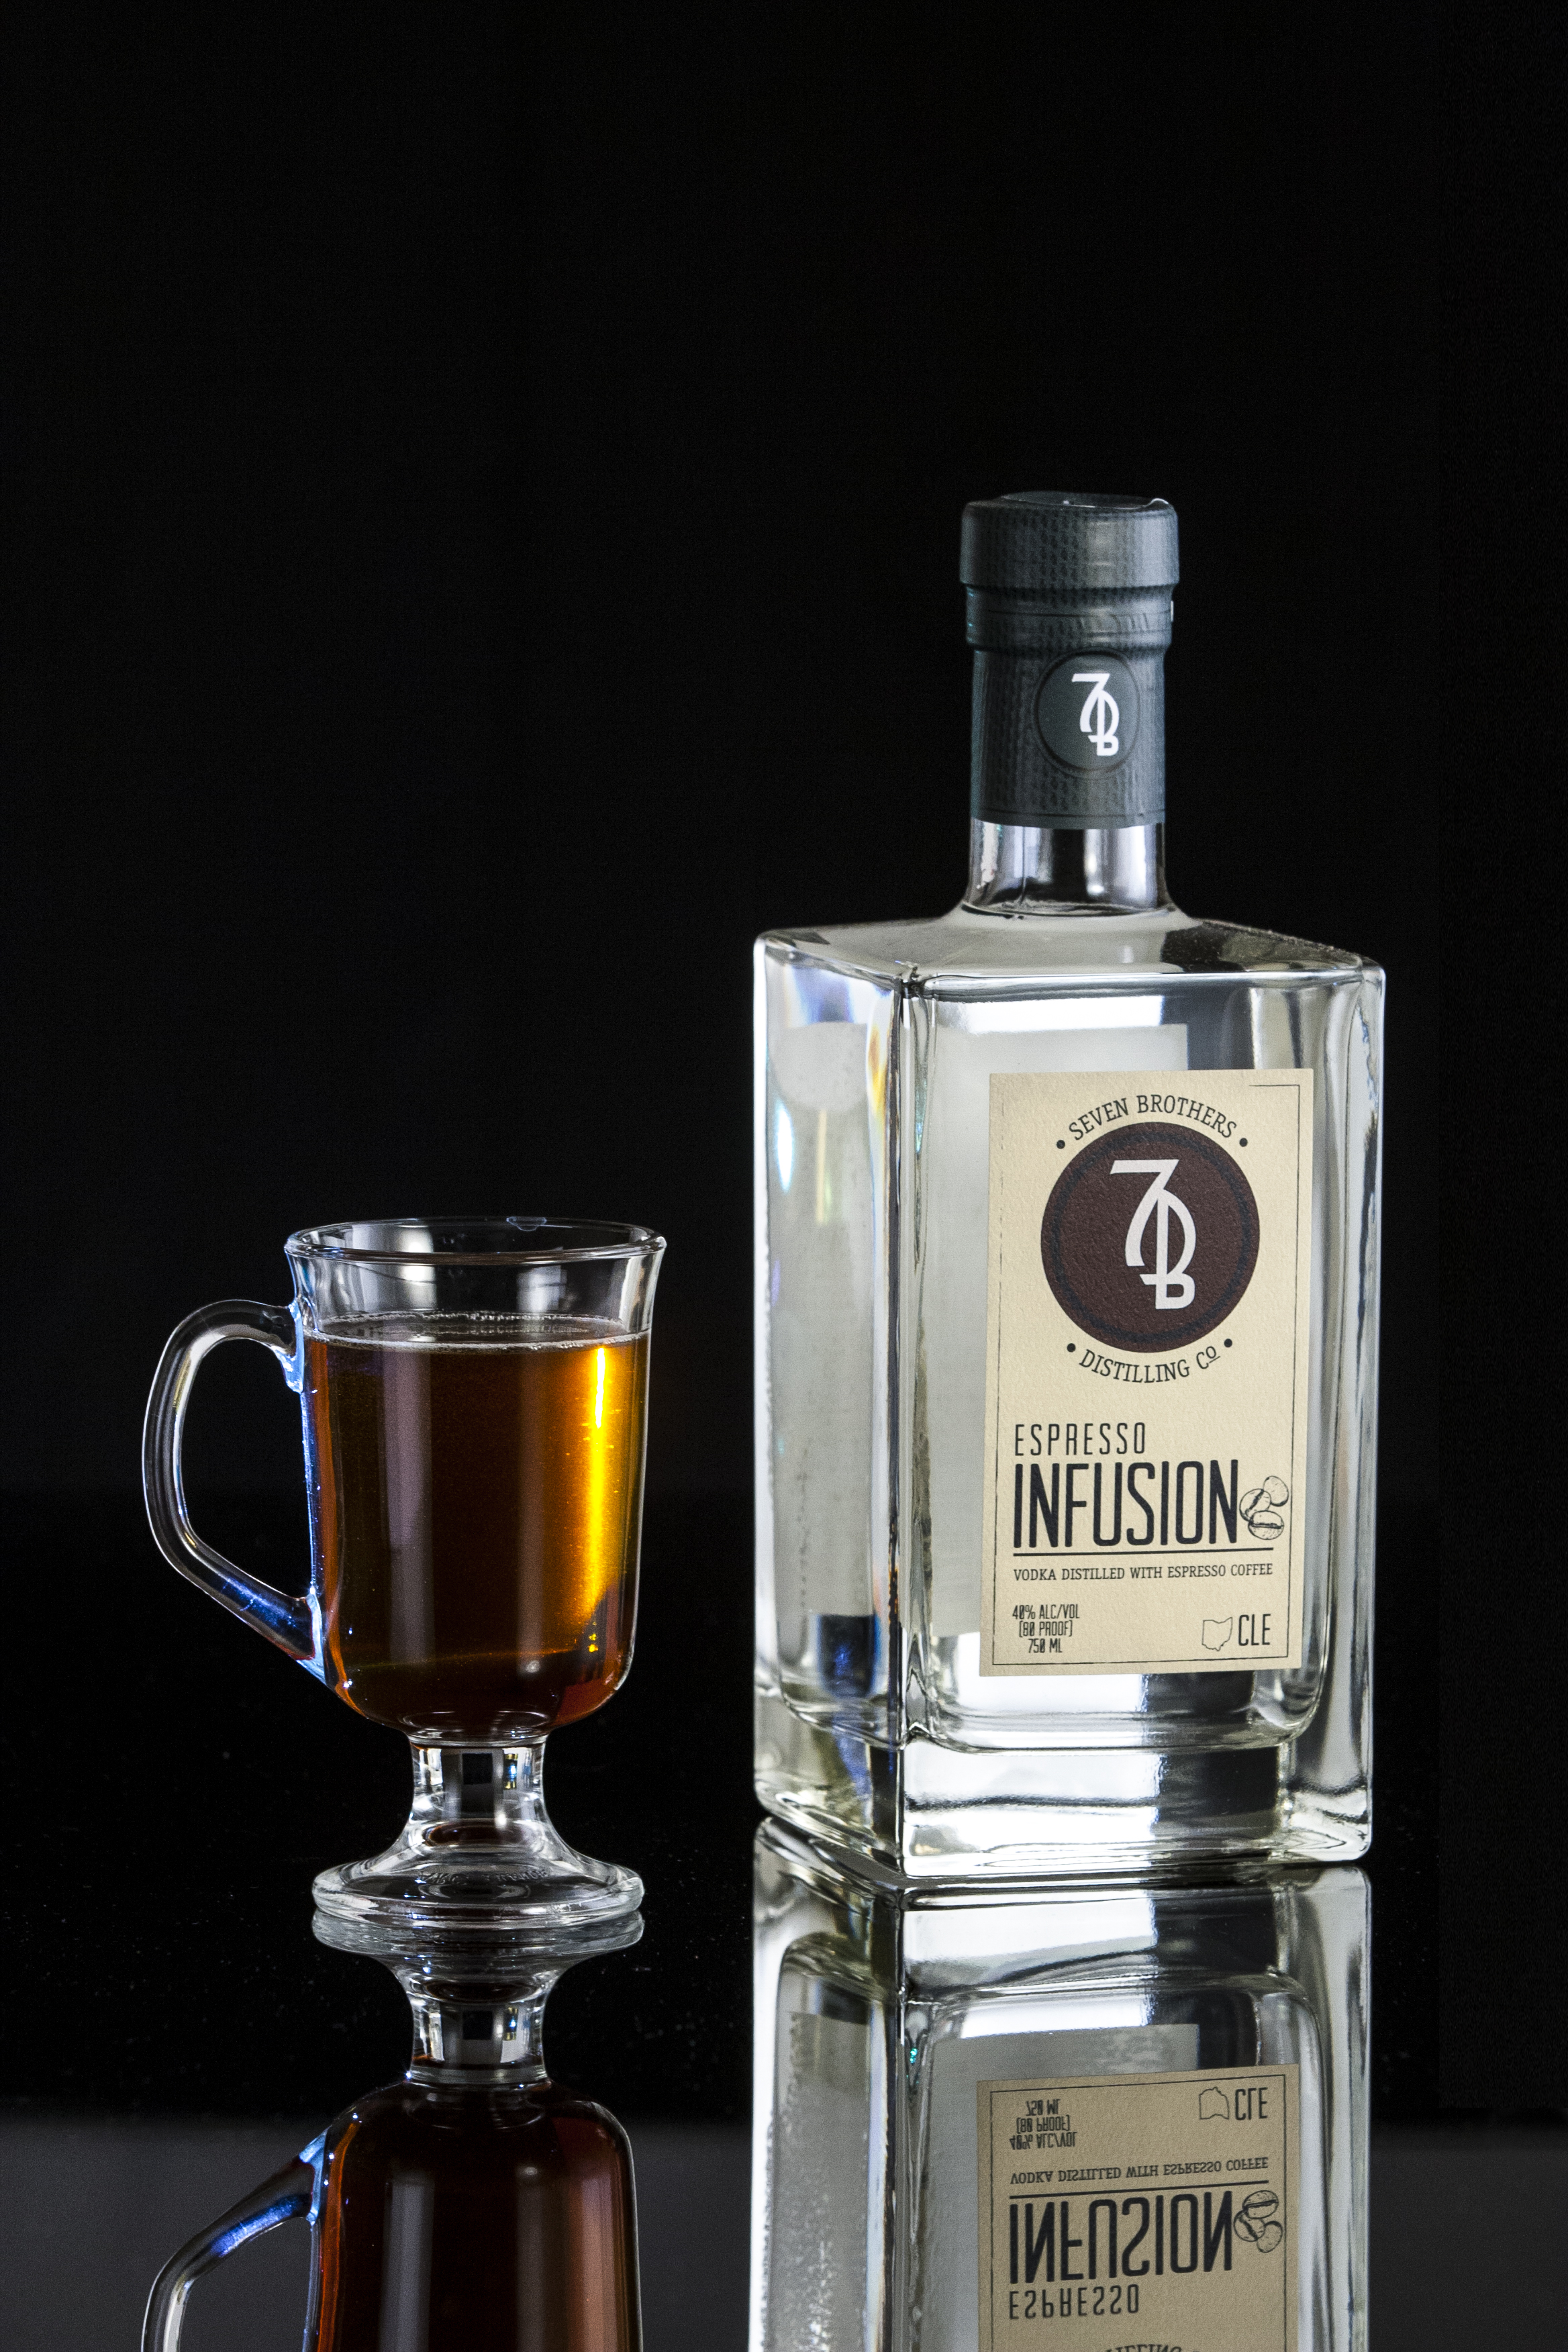 7B BLACK & WHITE - 1.25 oz Seven Brothers Espresso Infusion.5 oz Simple Syrup.25 oz Vanilla Extract (Maple Syrup)3 dash Chocolate BittersGuinnessCombine ingredients and stir briefly in a Coffee glass. Top with Guinness.